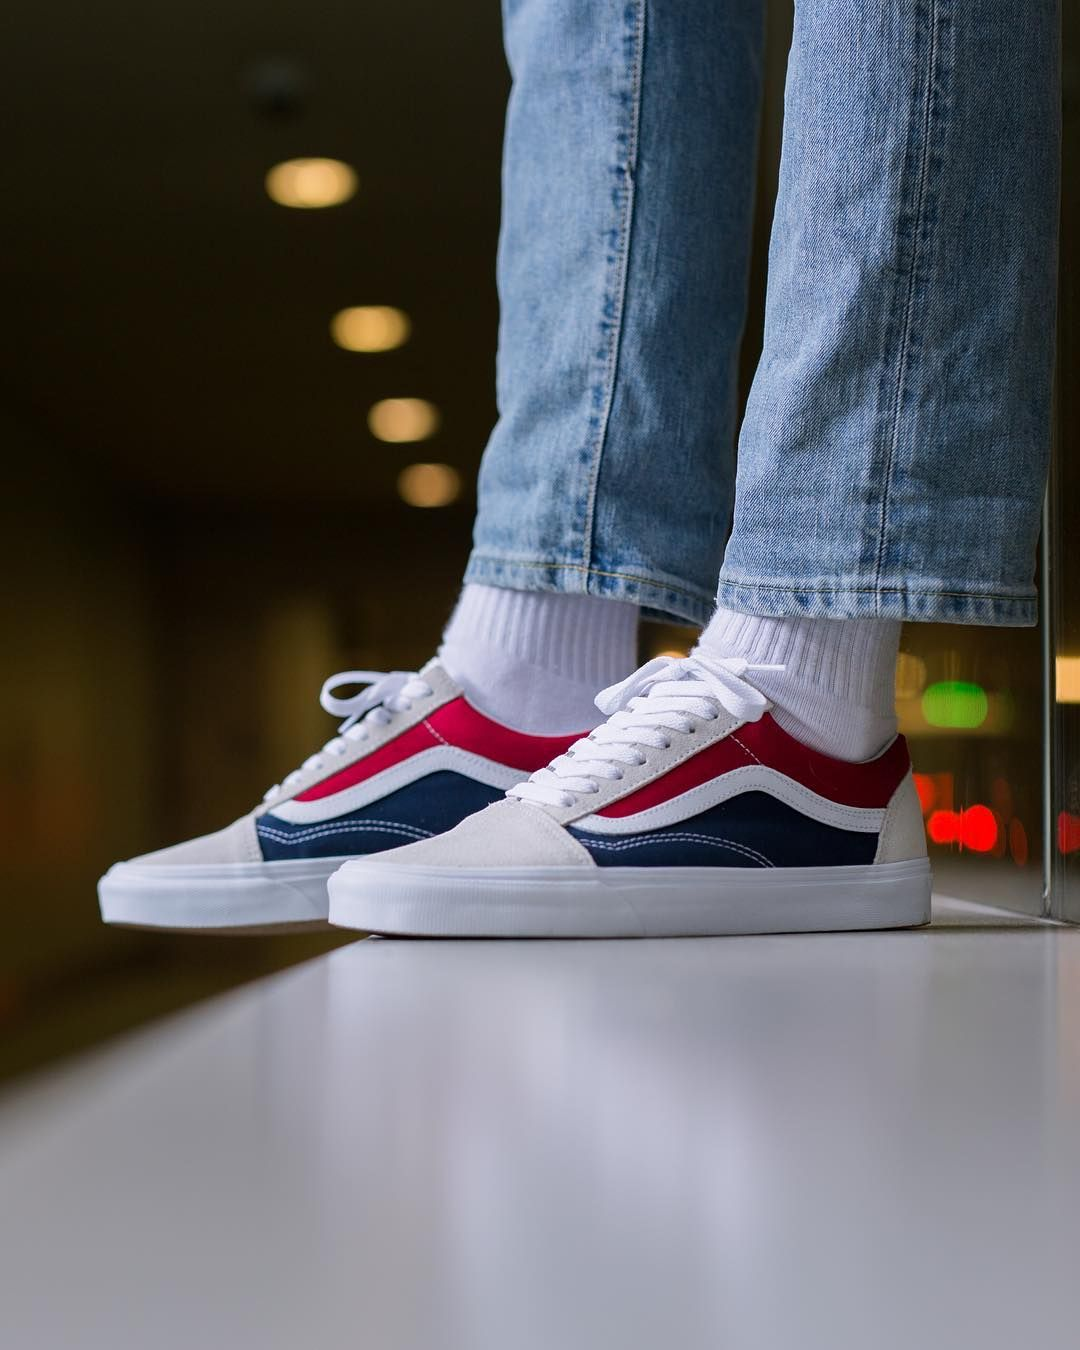 Vans Old Skool - White/Red/Dress Blue | Sneakers | Mens vans shoes ...